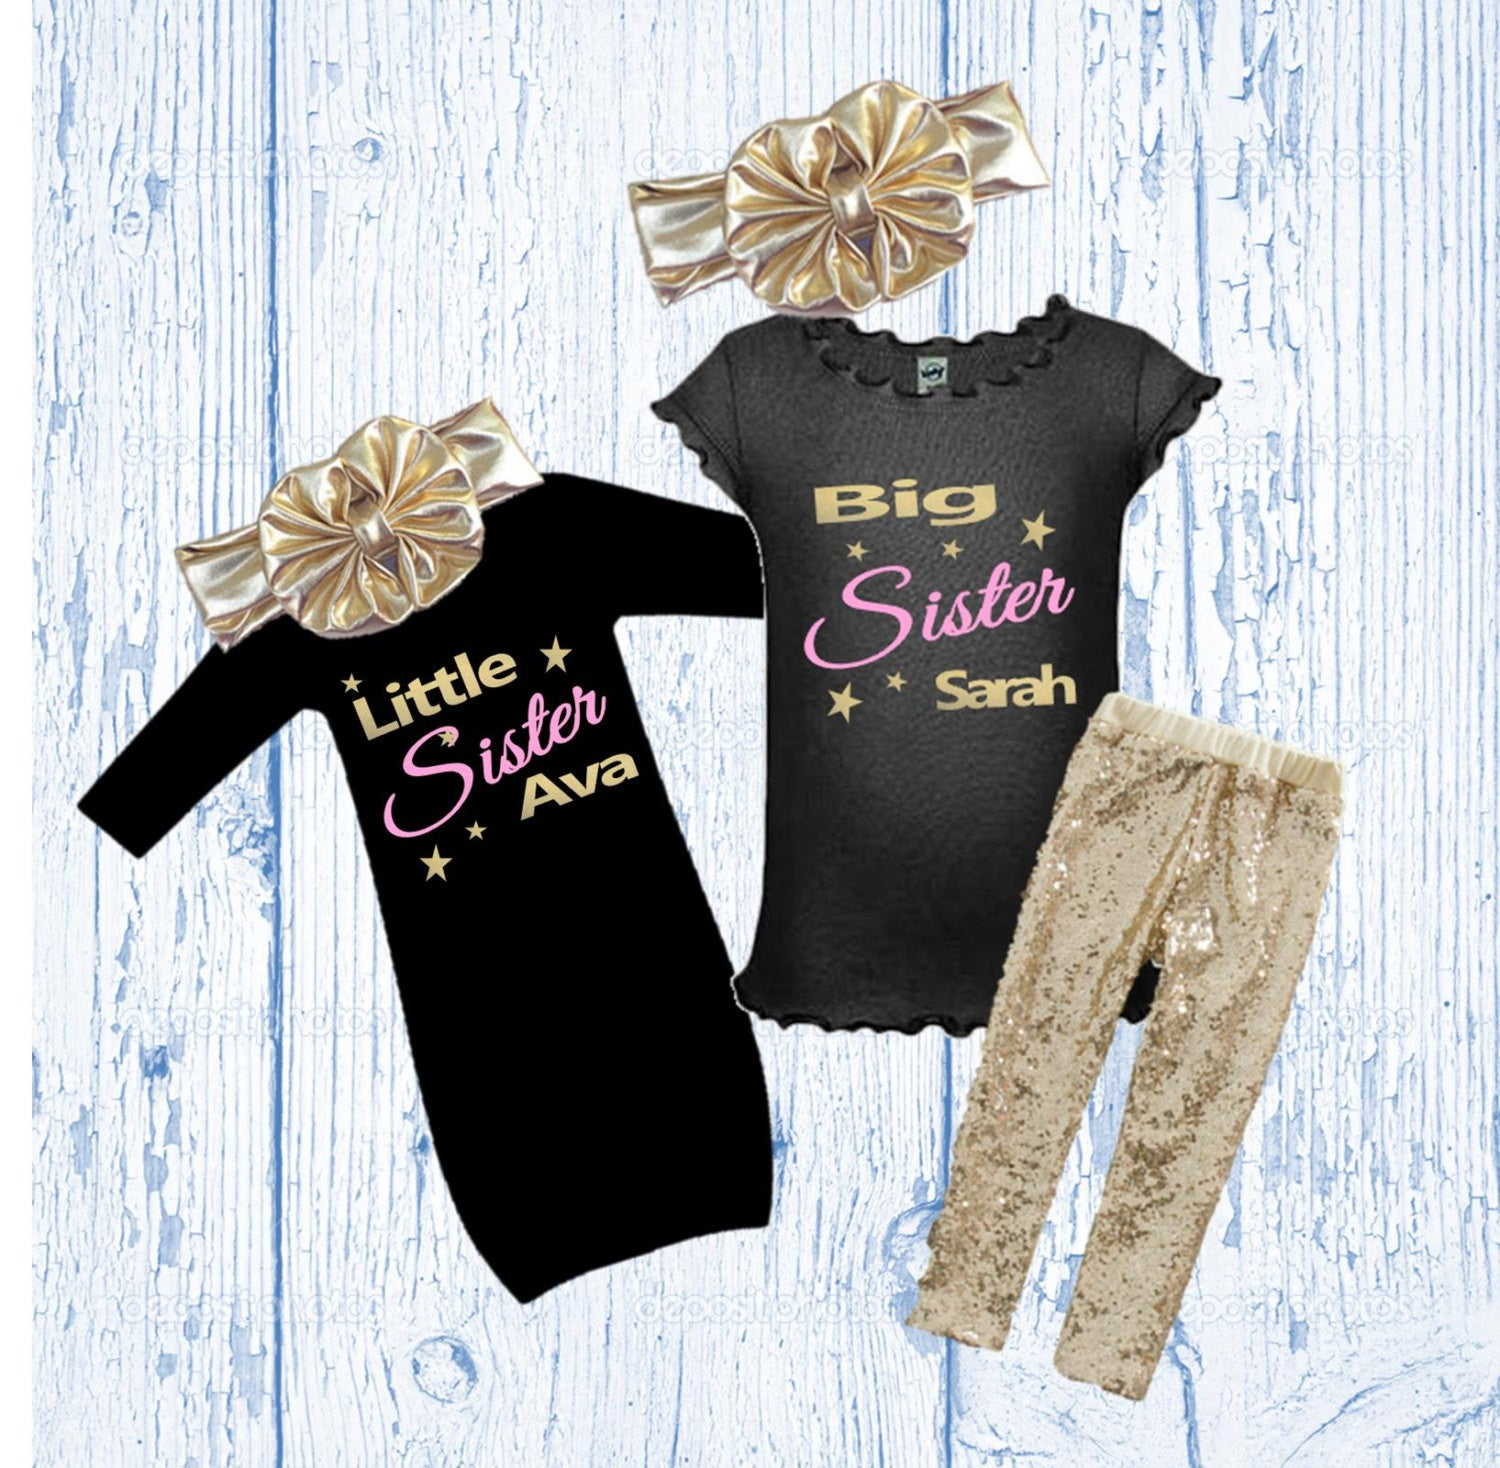 0a16bc8520d0 Big and Little Sister Matching Outfits - Sibling Matching Outfits - Gold  Glitter Big Sister